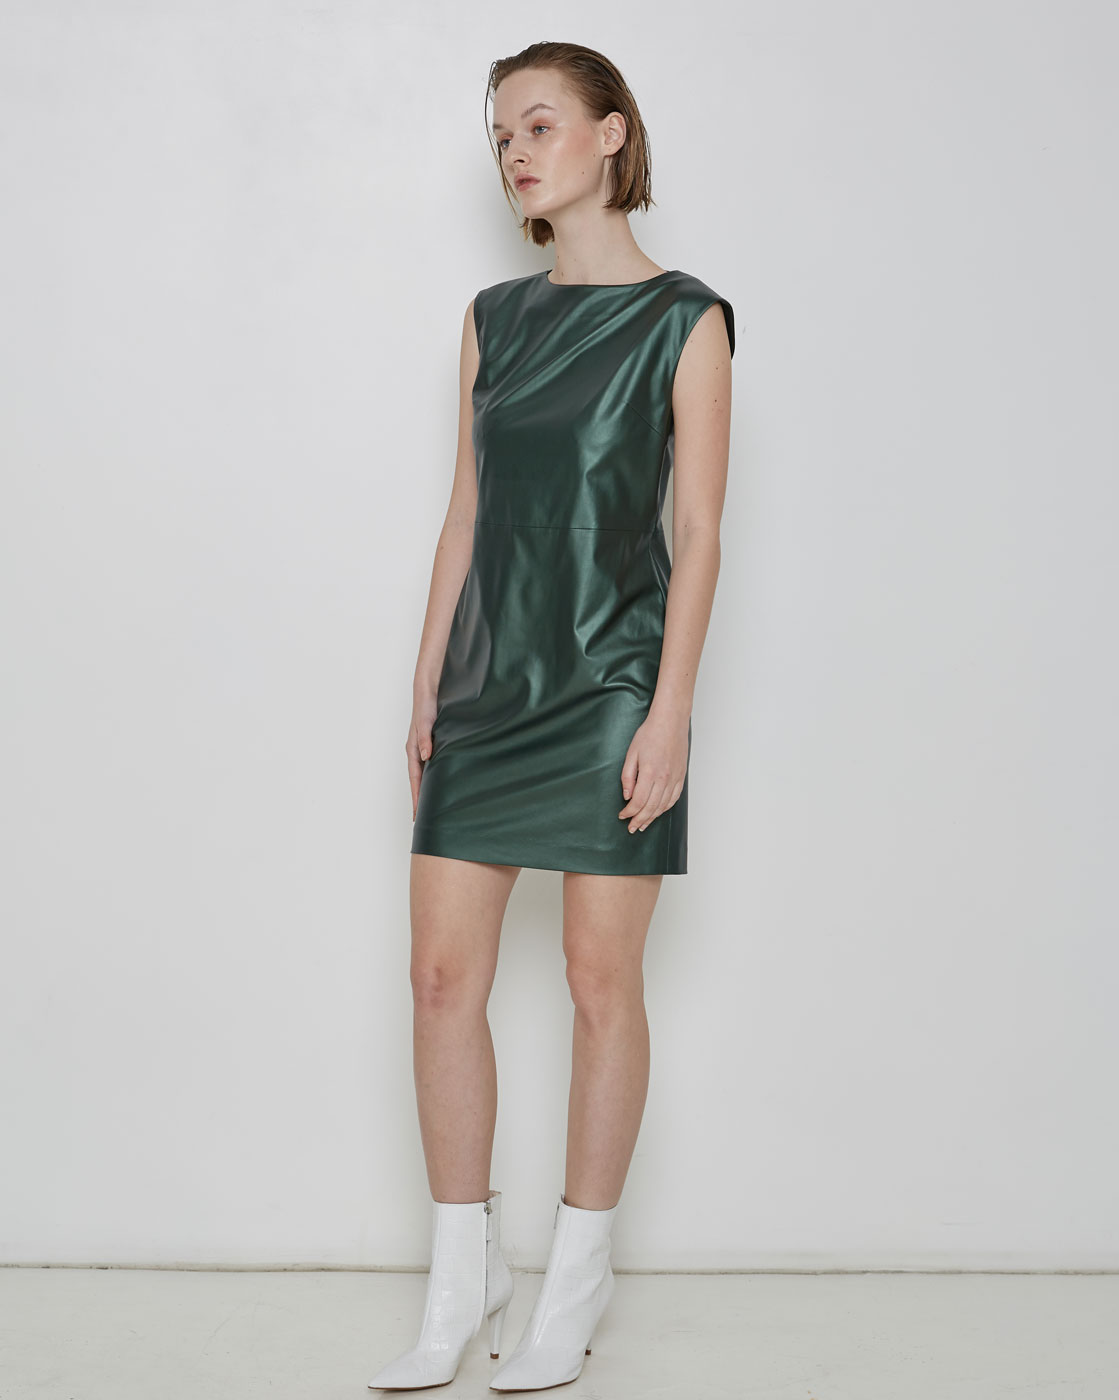 Green Sleevless Tunic Dress